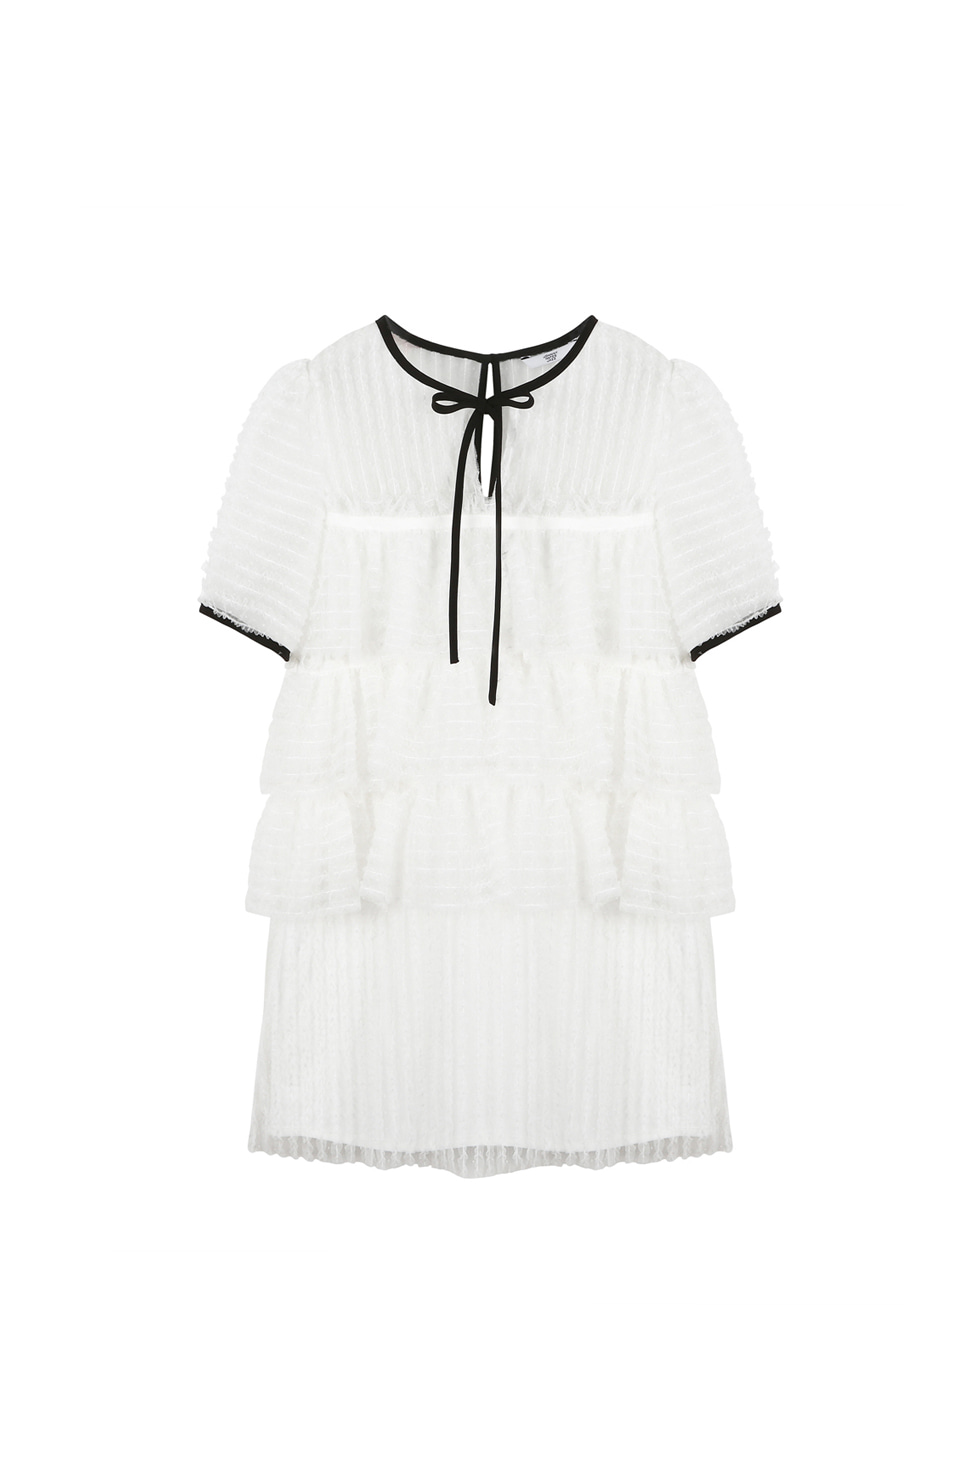 TULLED MINI DRESS - WHITE